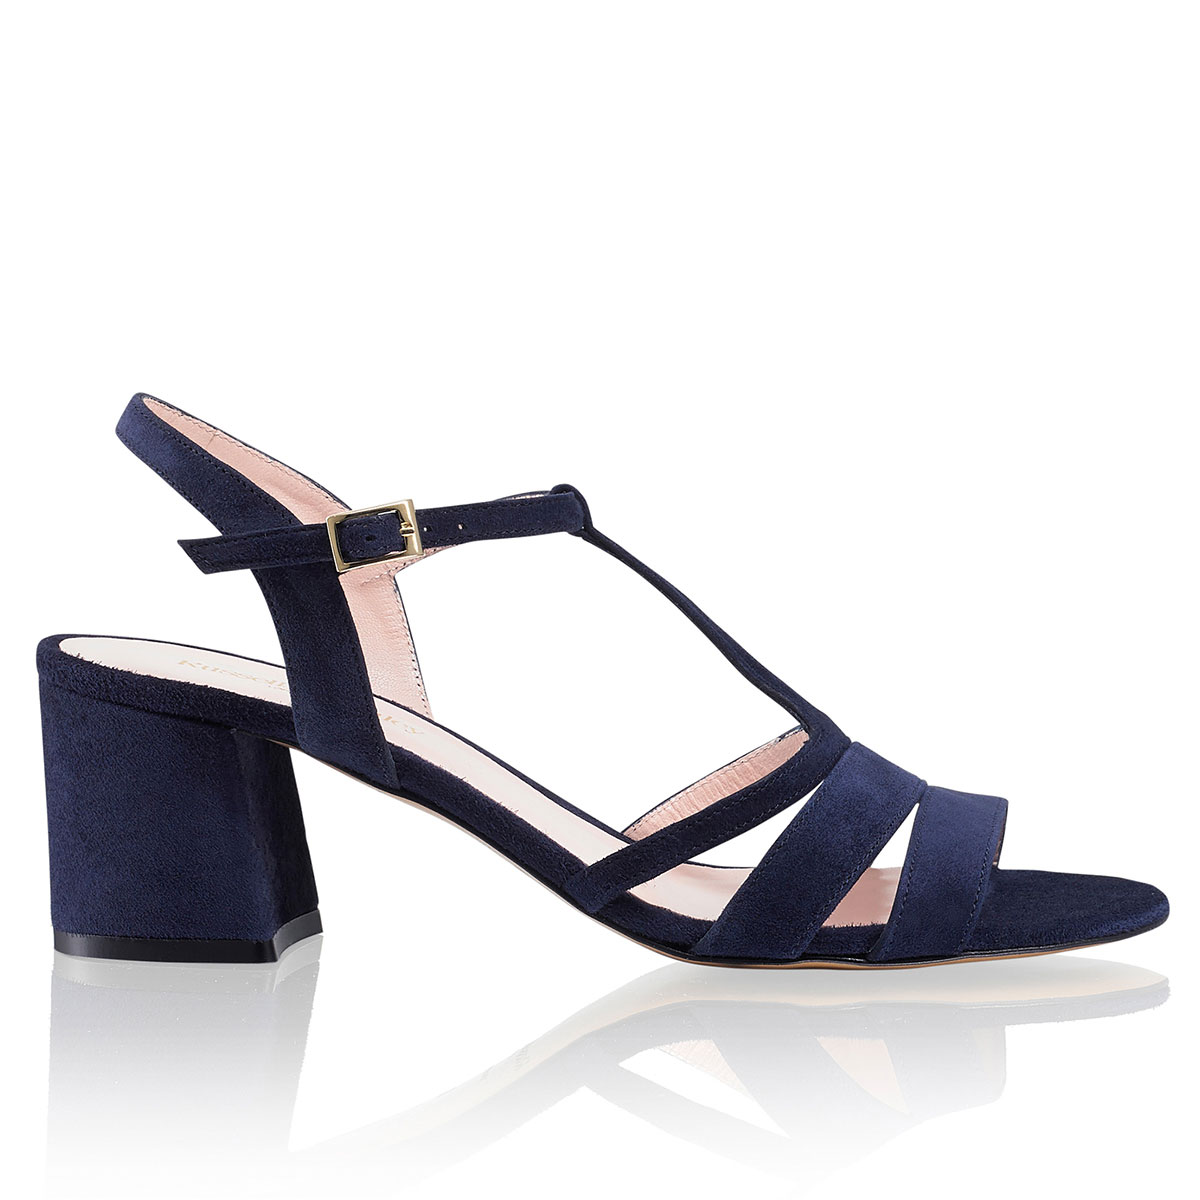 Russell and Bromley VOGUE T-Bar Sandal